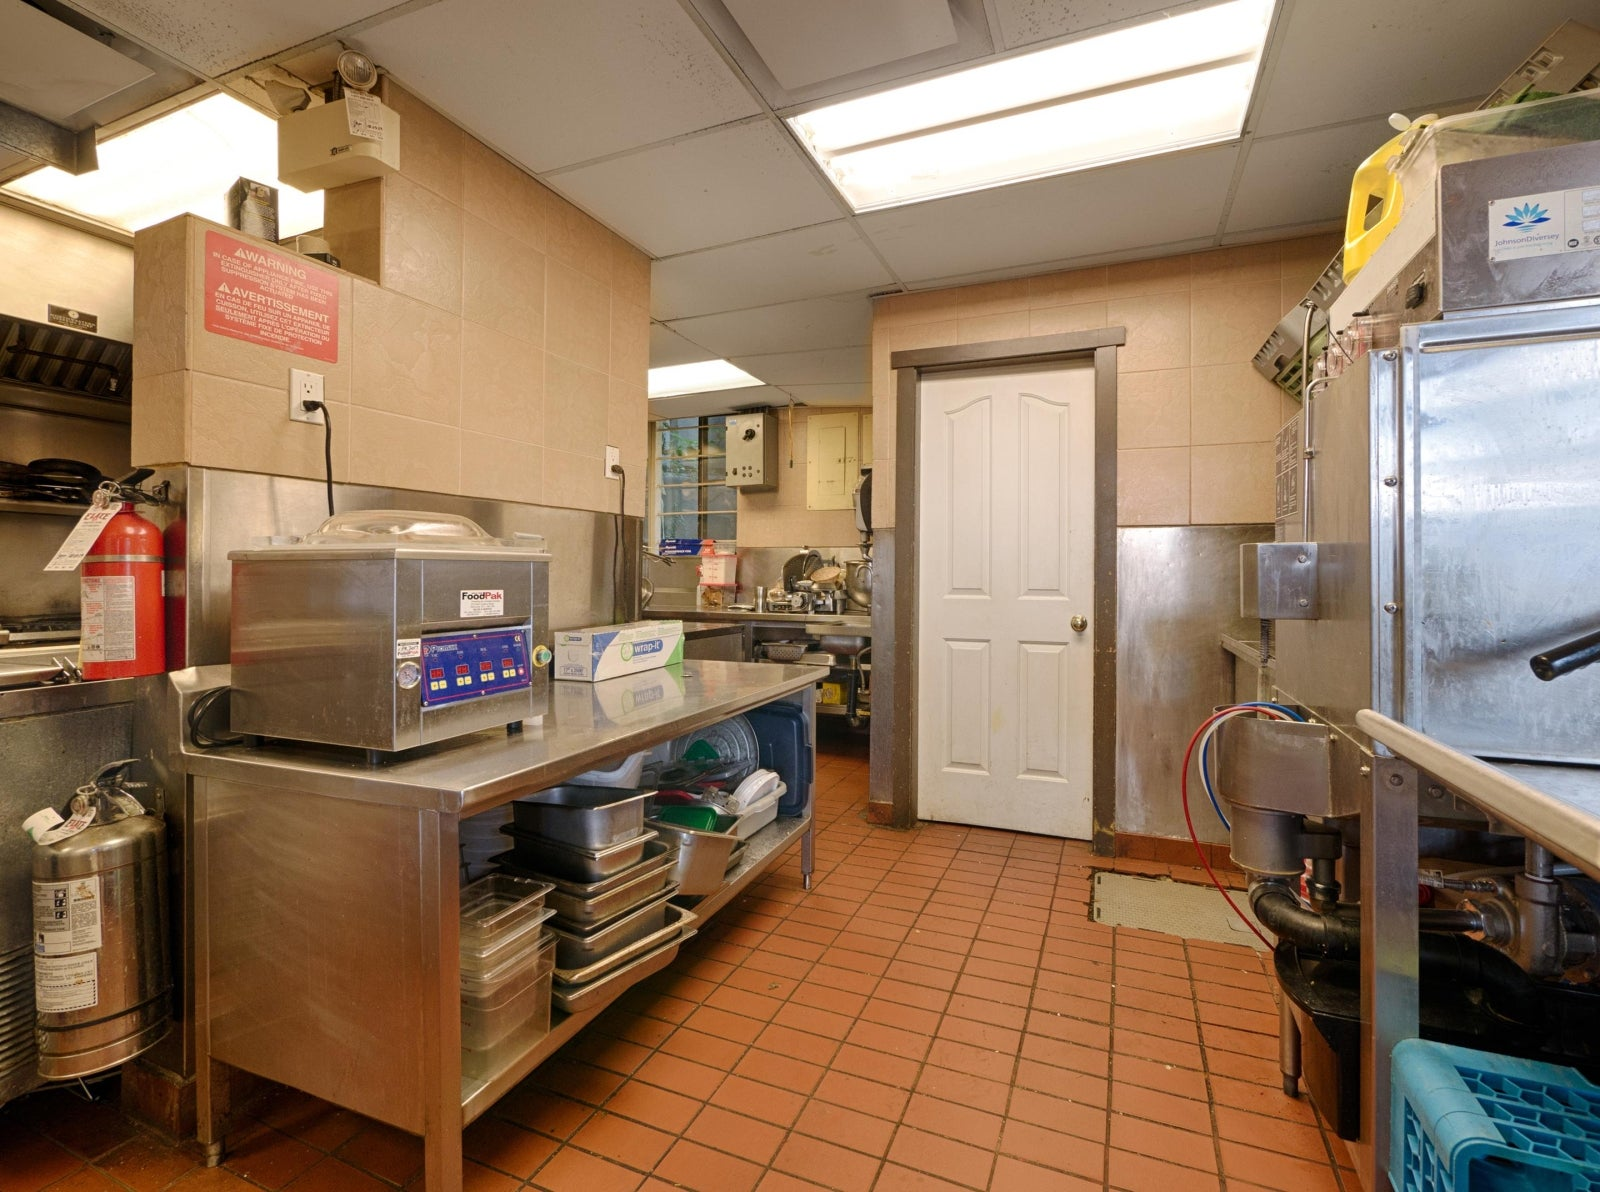 The Nova Kitchen 546 Gibsons Way, Gibsons BC V0N1V9 - Gibsons & Area COMM for sale(C8014726) #26